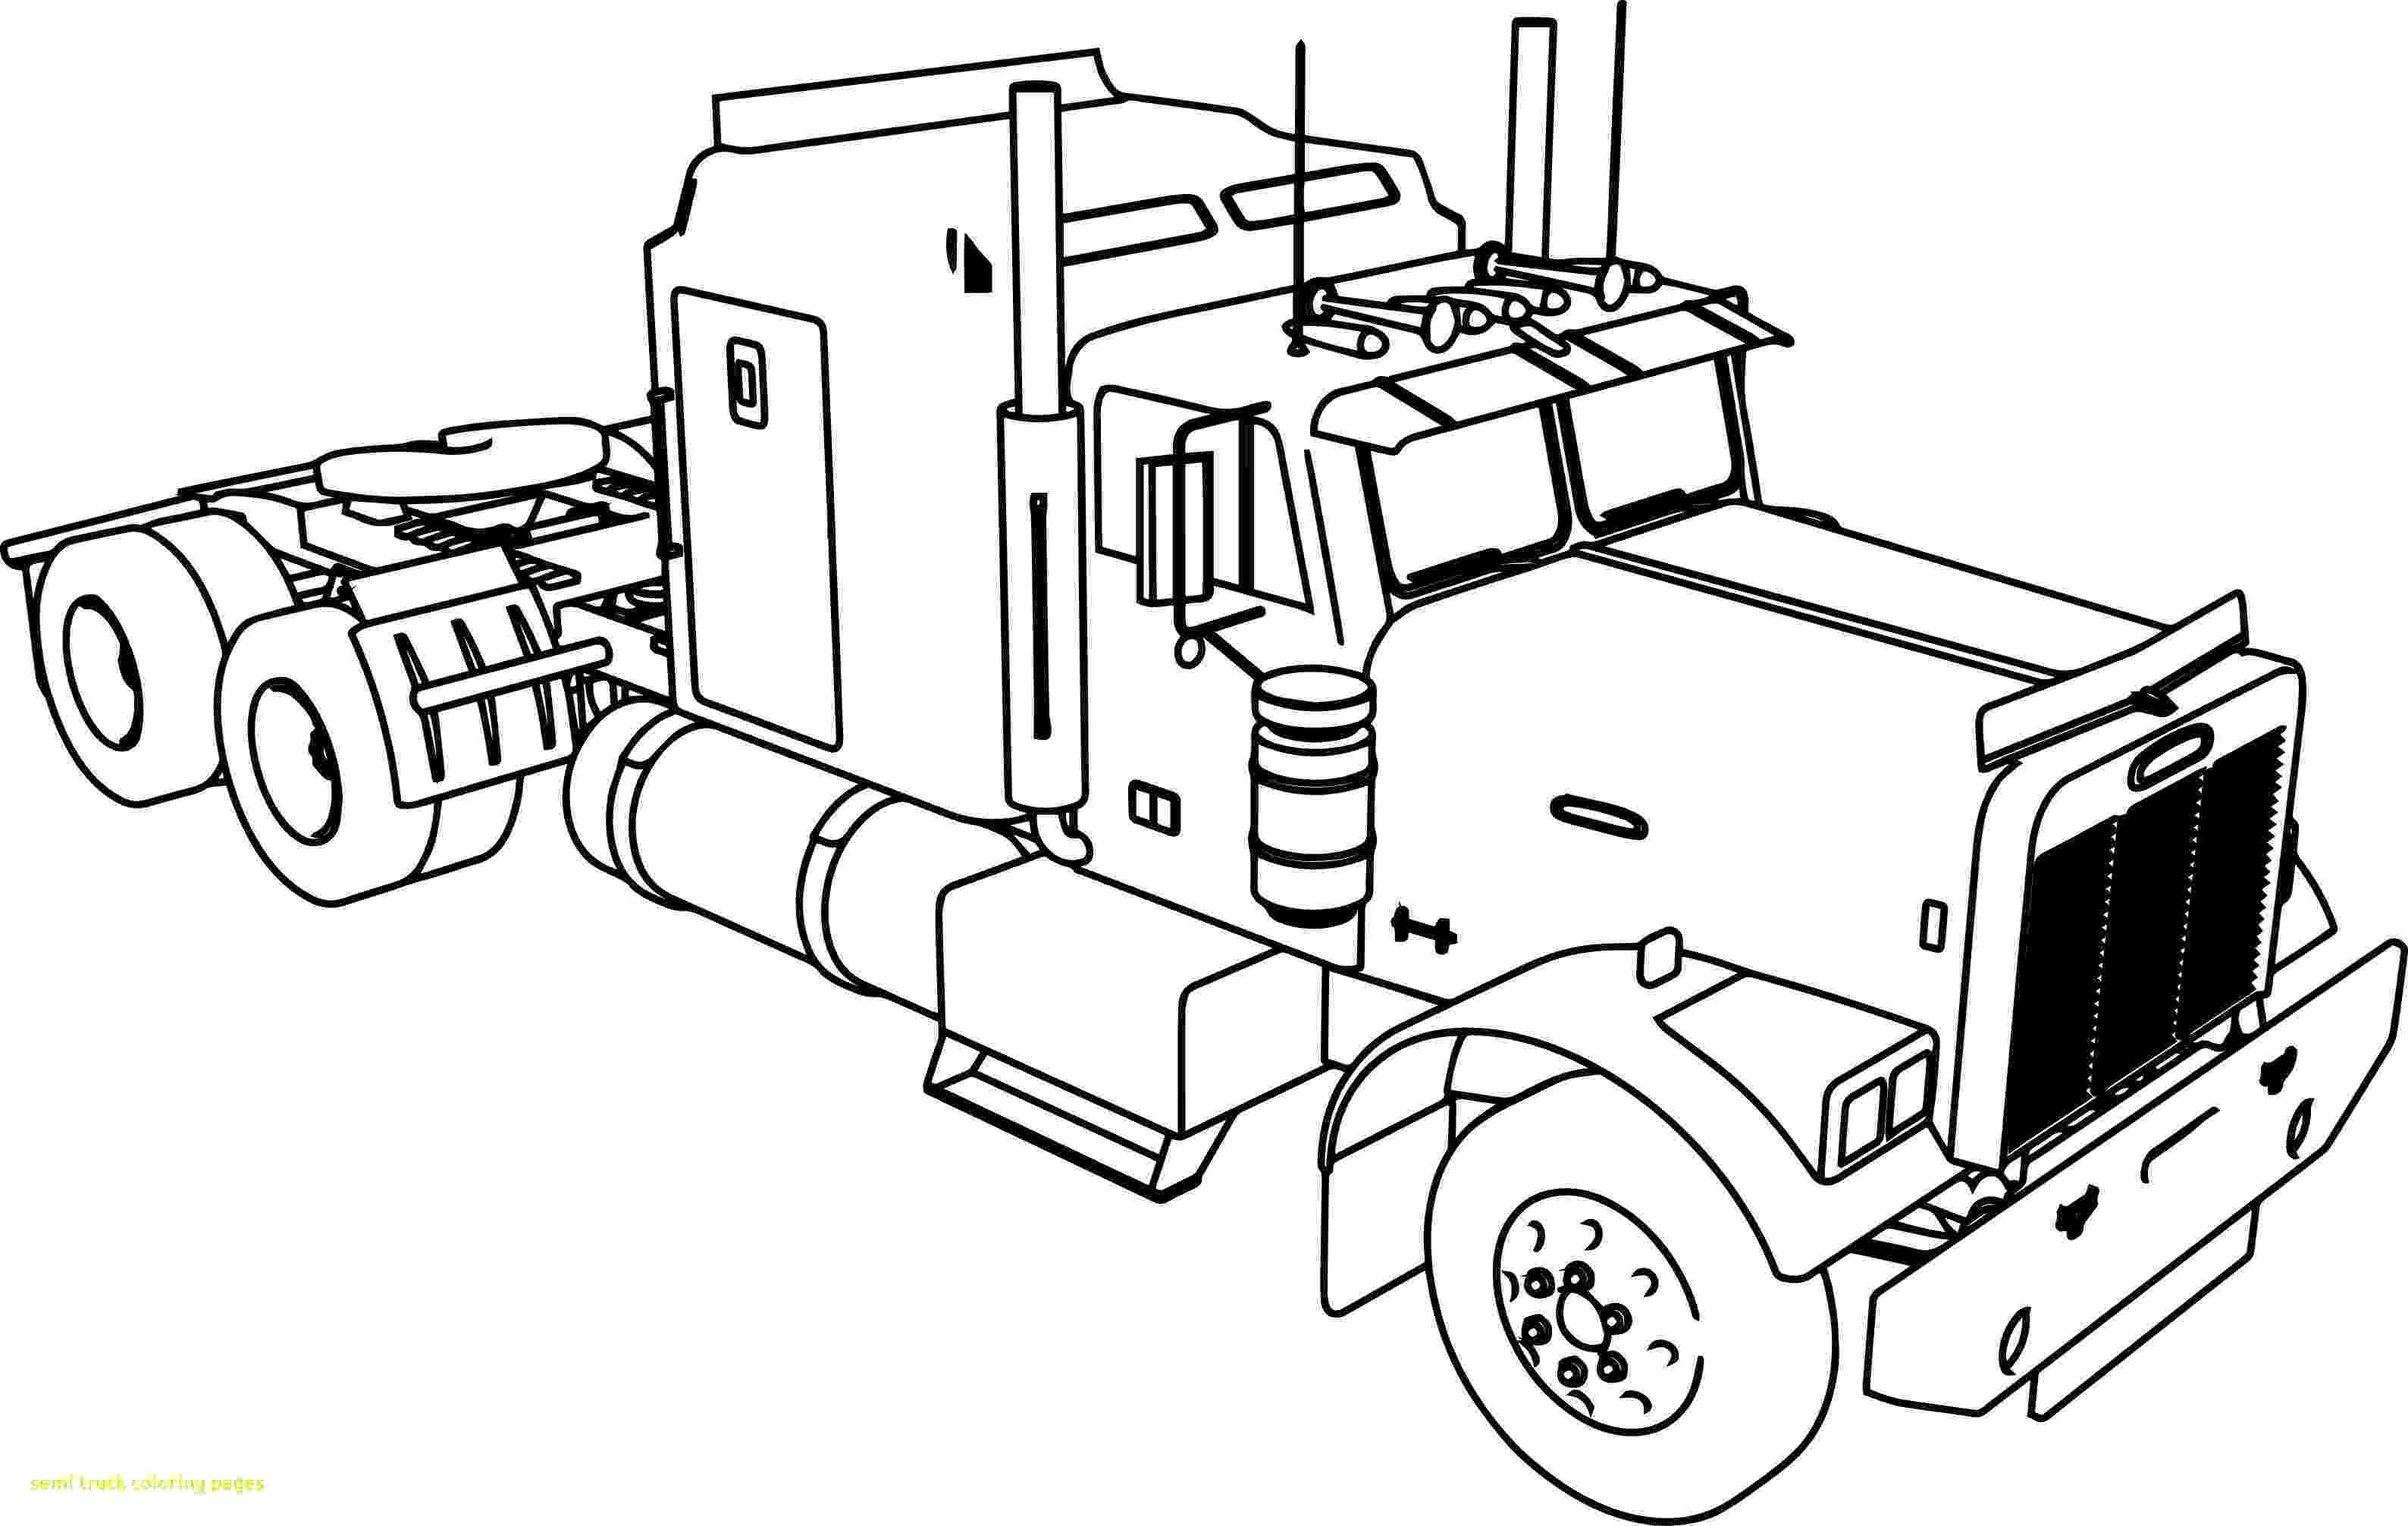 mack truck coloring pages mack truck coloring pages at getcoloringscom free mack truck coloring pages